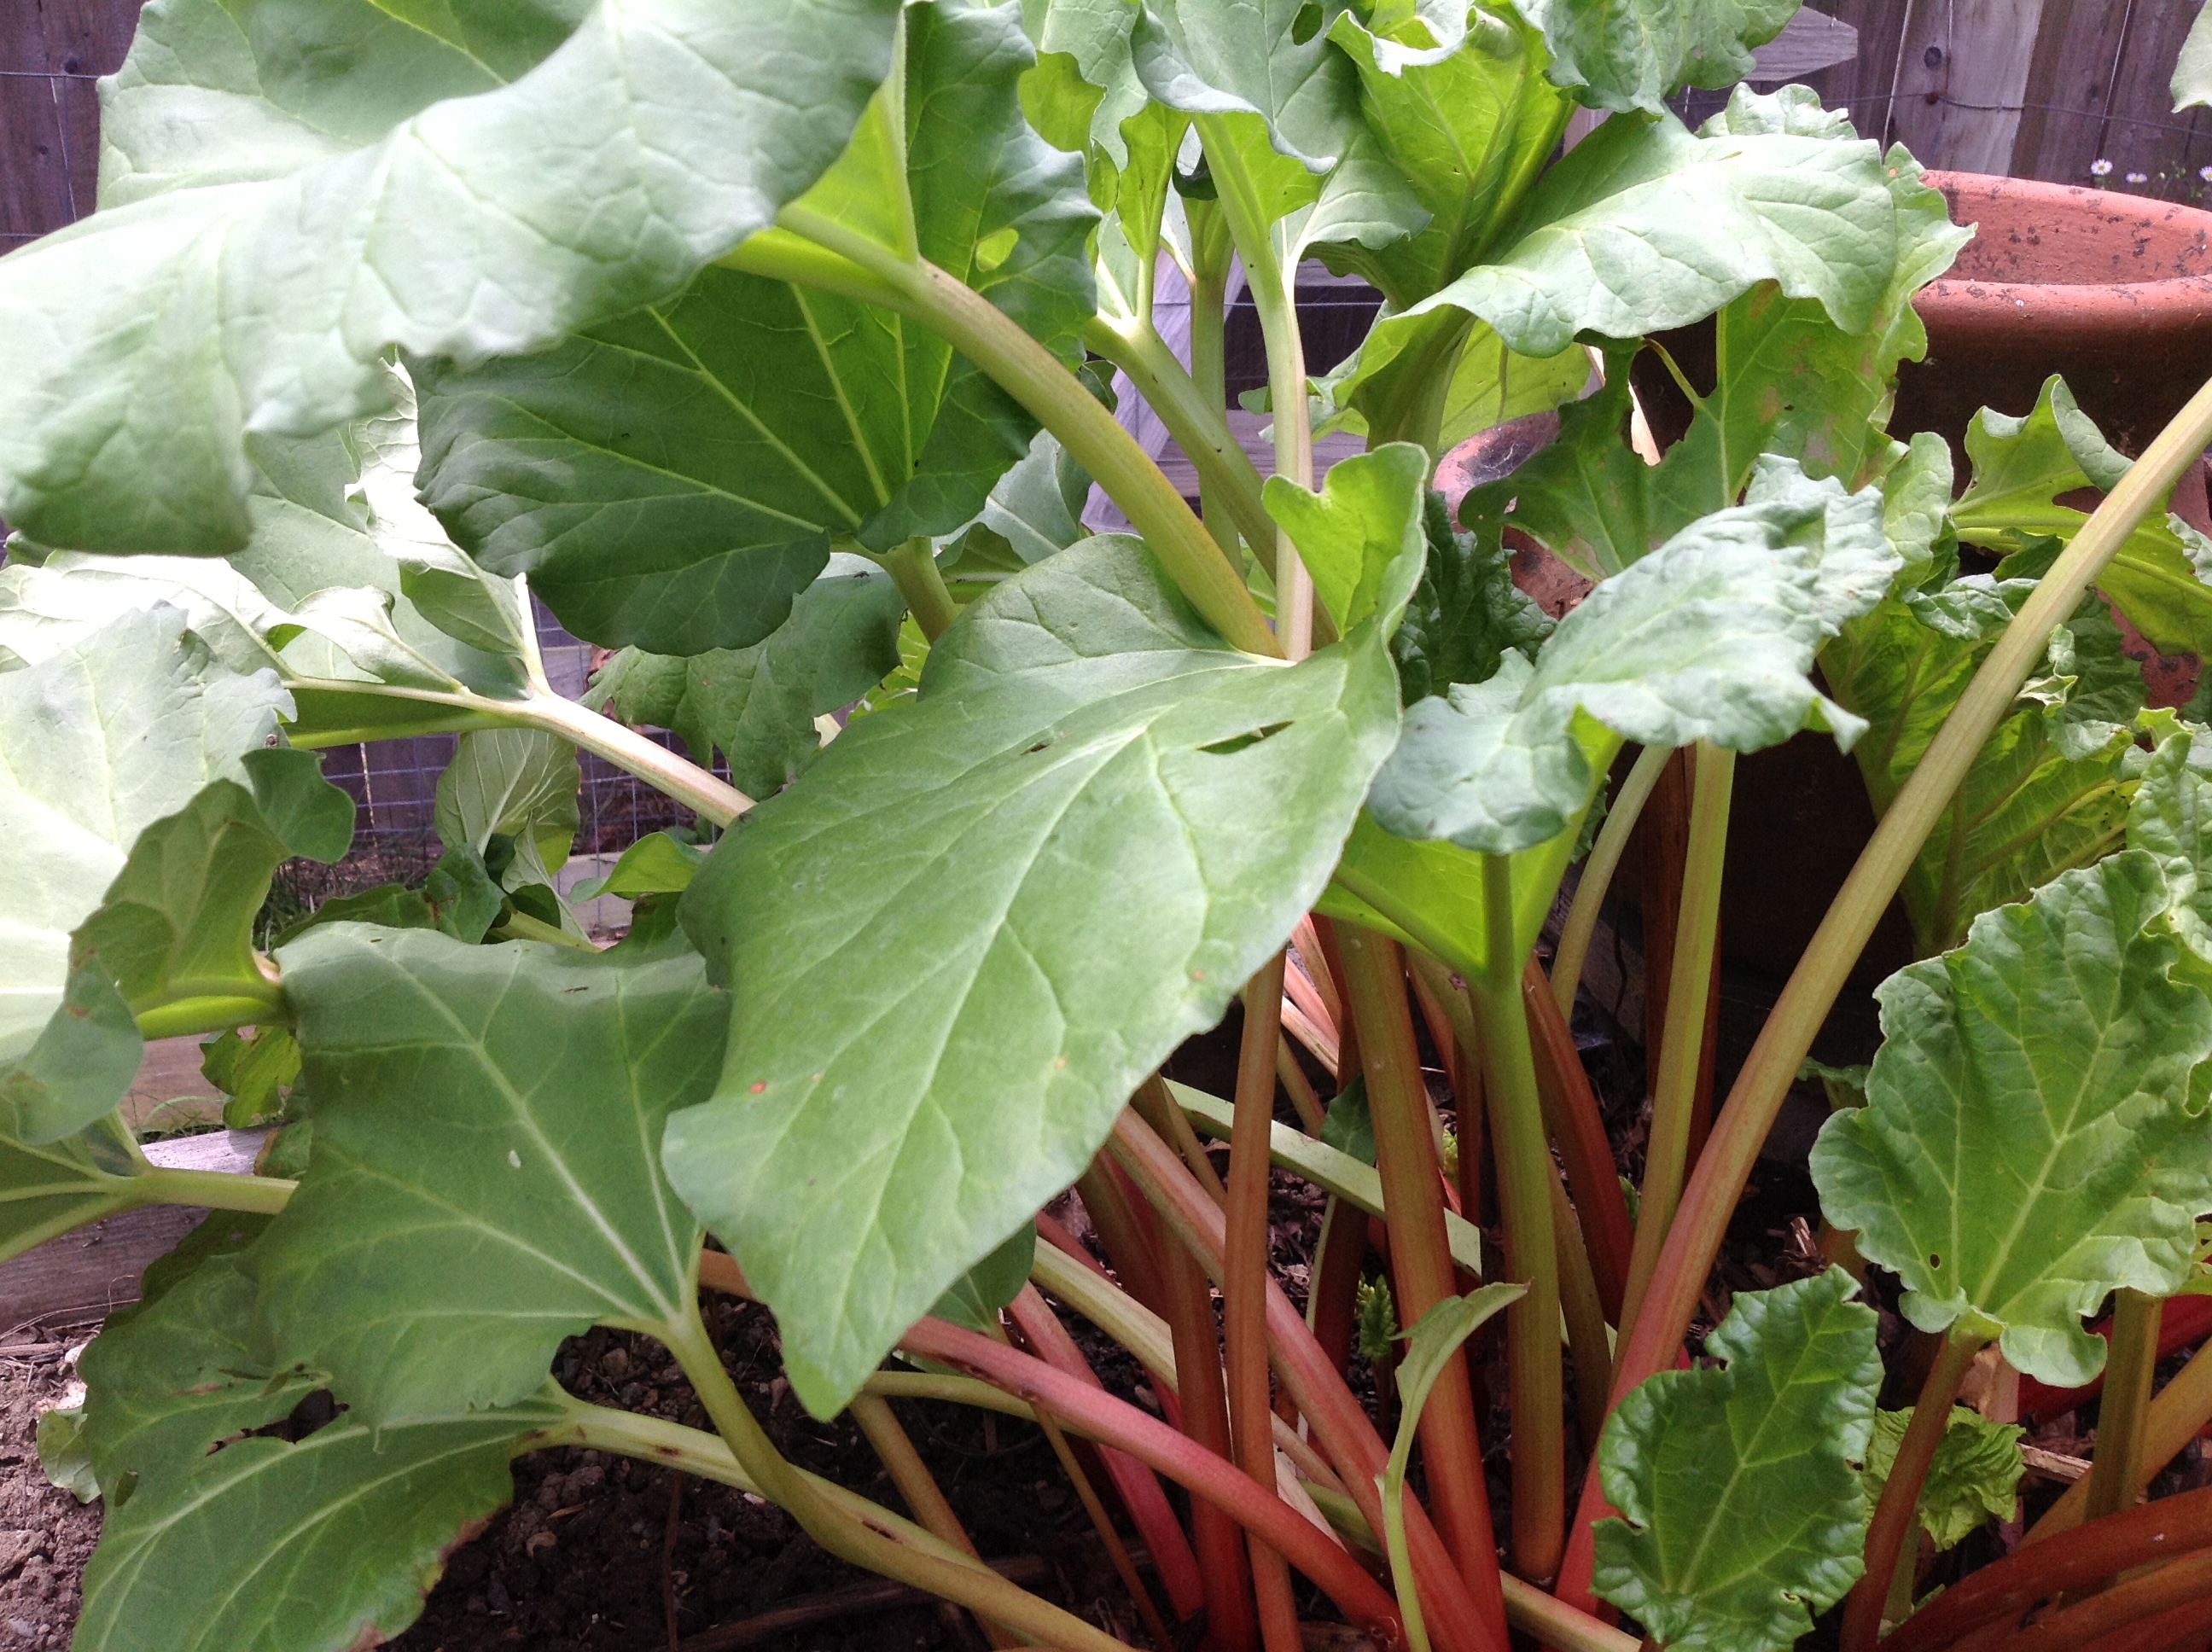 How to plant rhubarb in the fall - My 25 Year Old Rhubarb Plant Still Going Strong